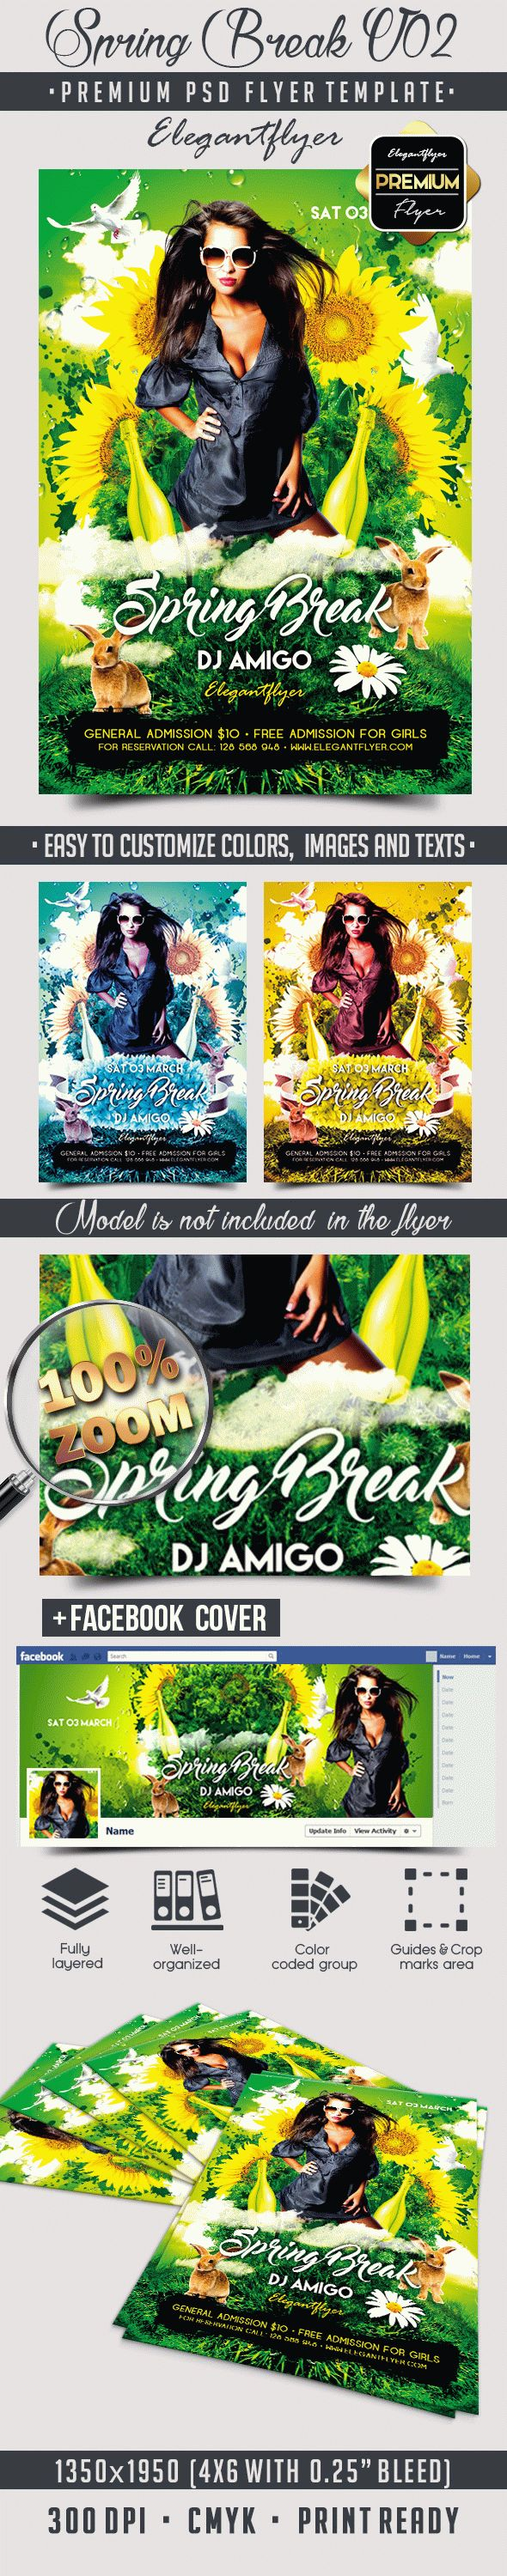 Spring Break V02 – Flyer PSD Template + Facebook Cover